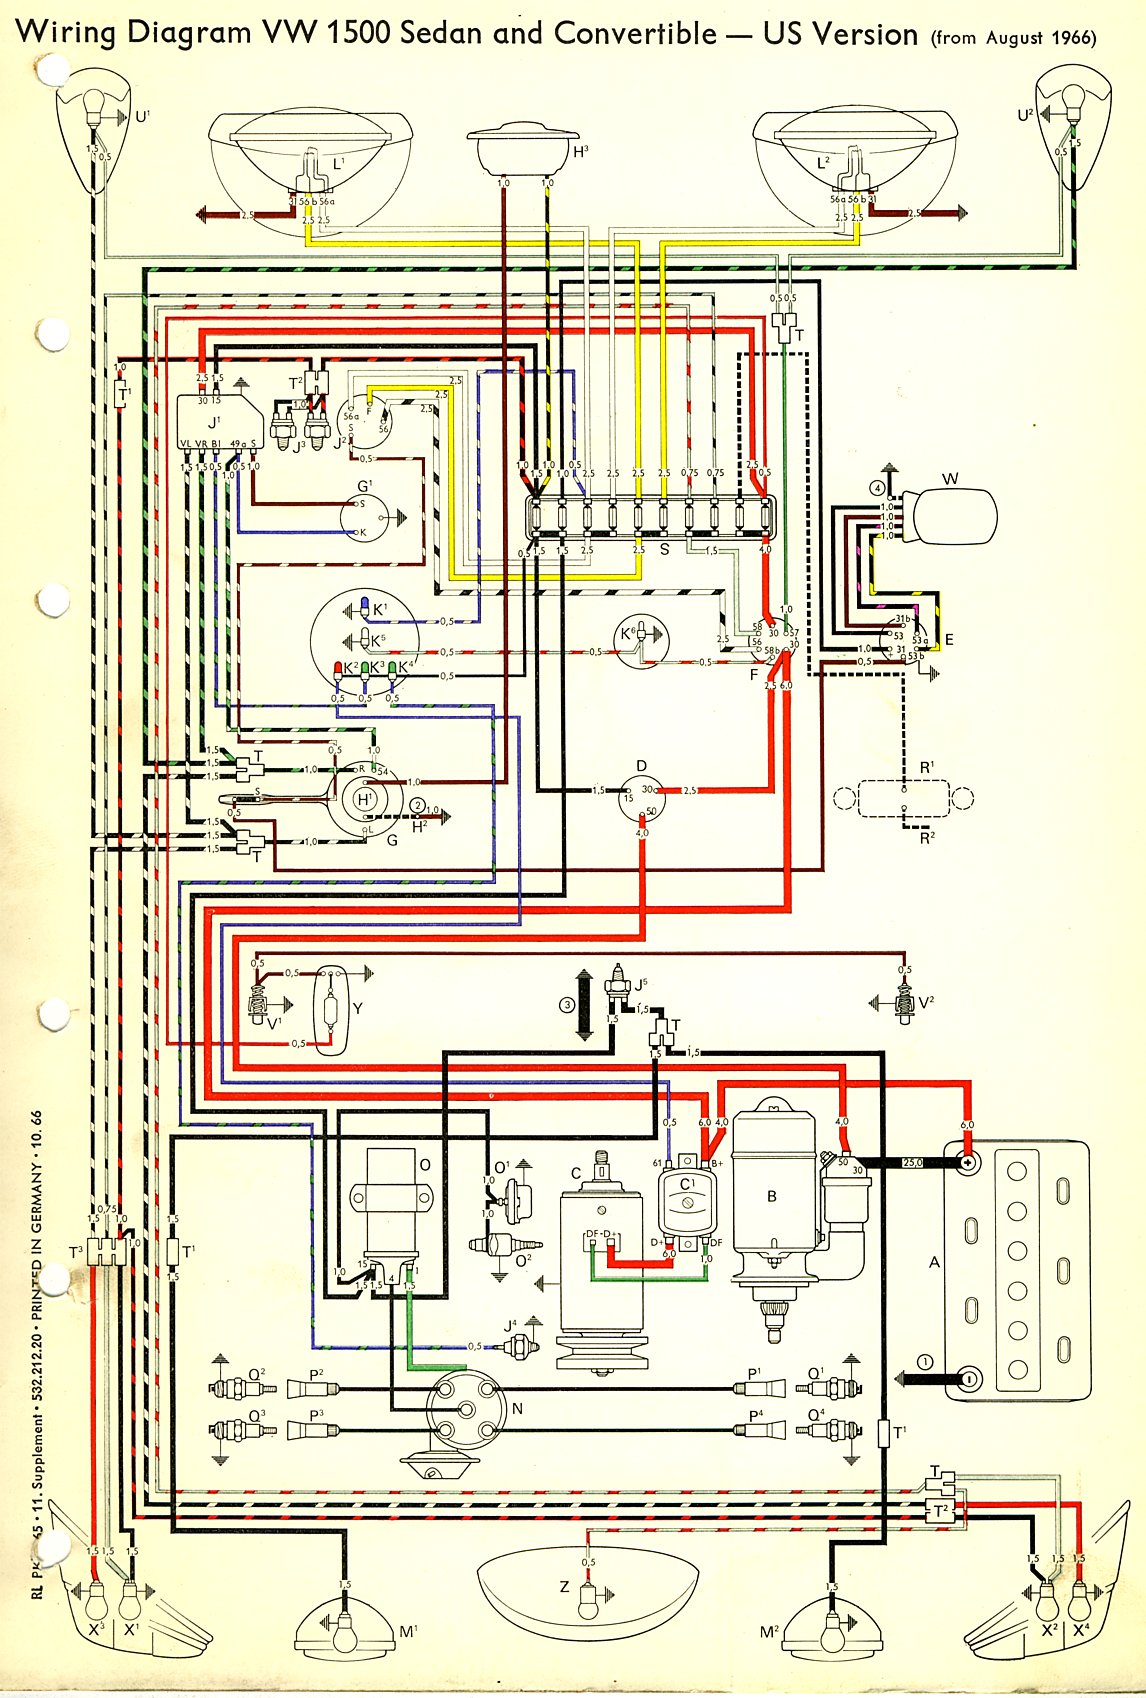 thesamba com type 1 wiring diagrams rh thesamba com 1971 vw beetle starter wiring diagram 1971 vw beetle electrical diagram